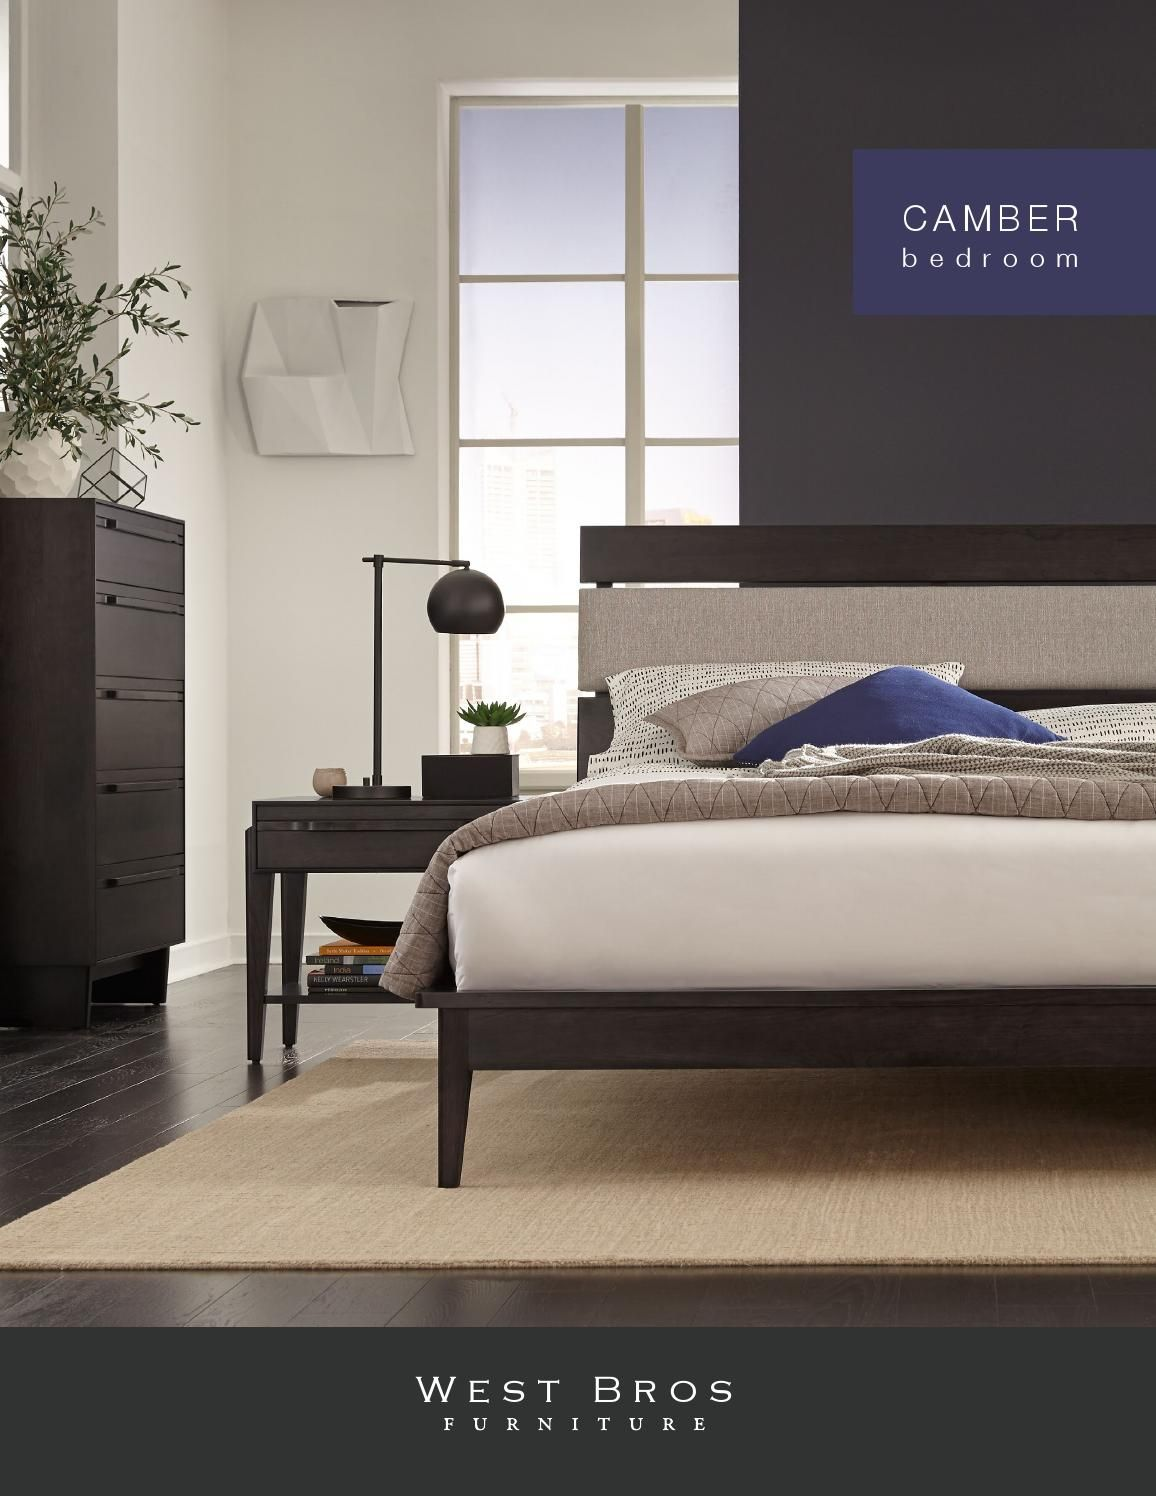 West bros furniture camber bedroom made from natural cherry the